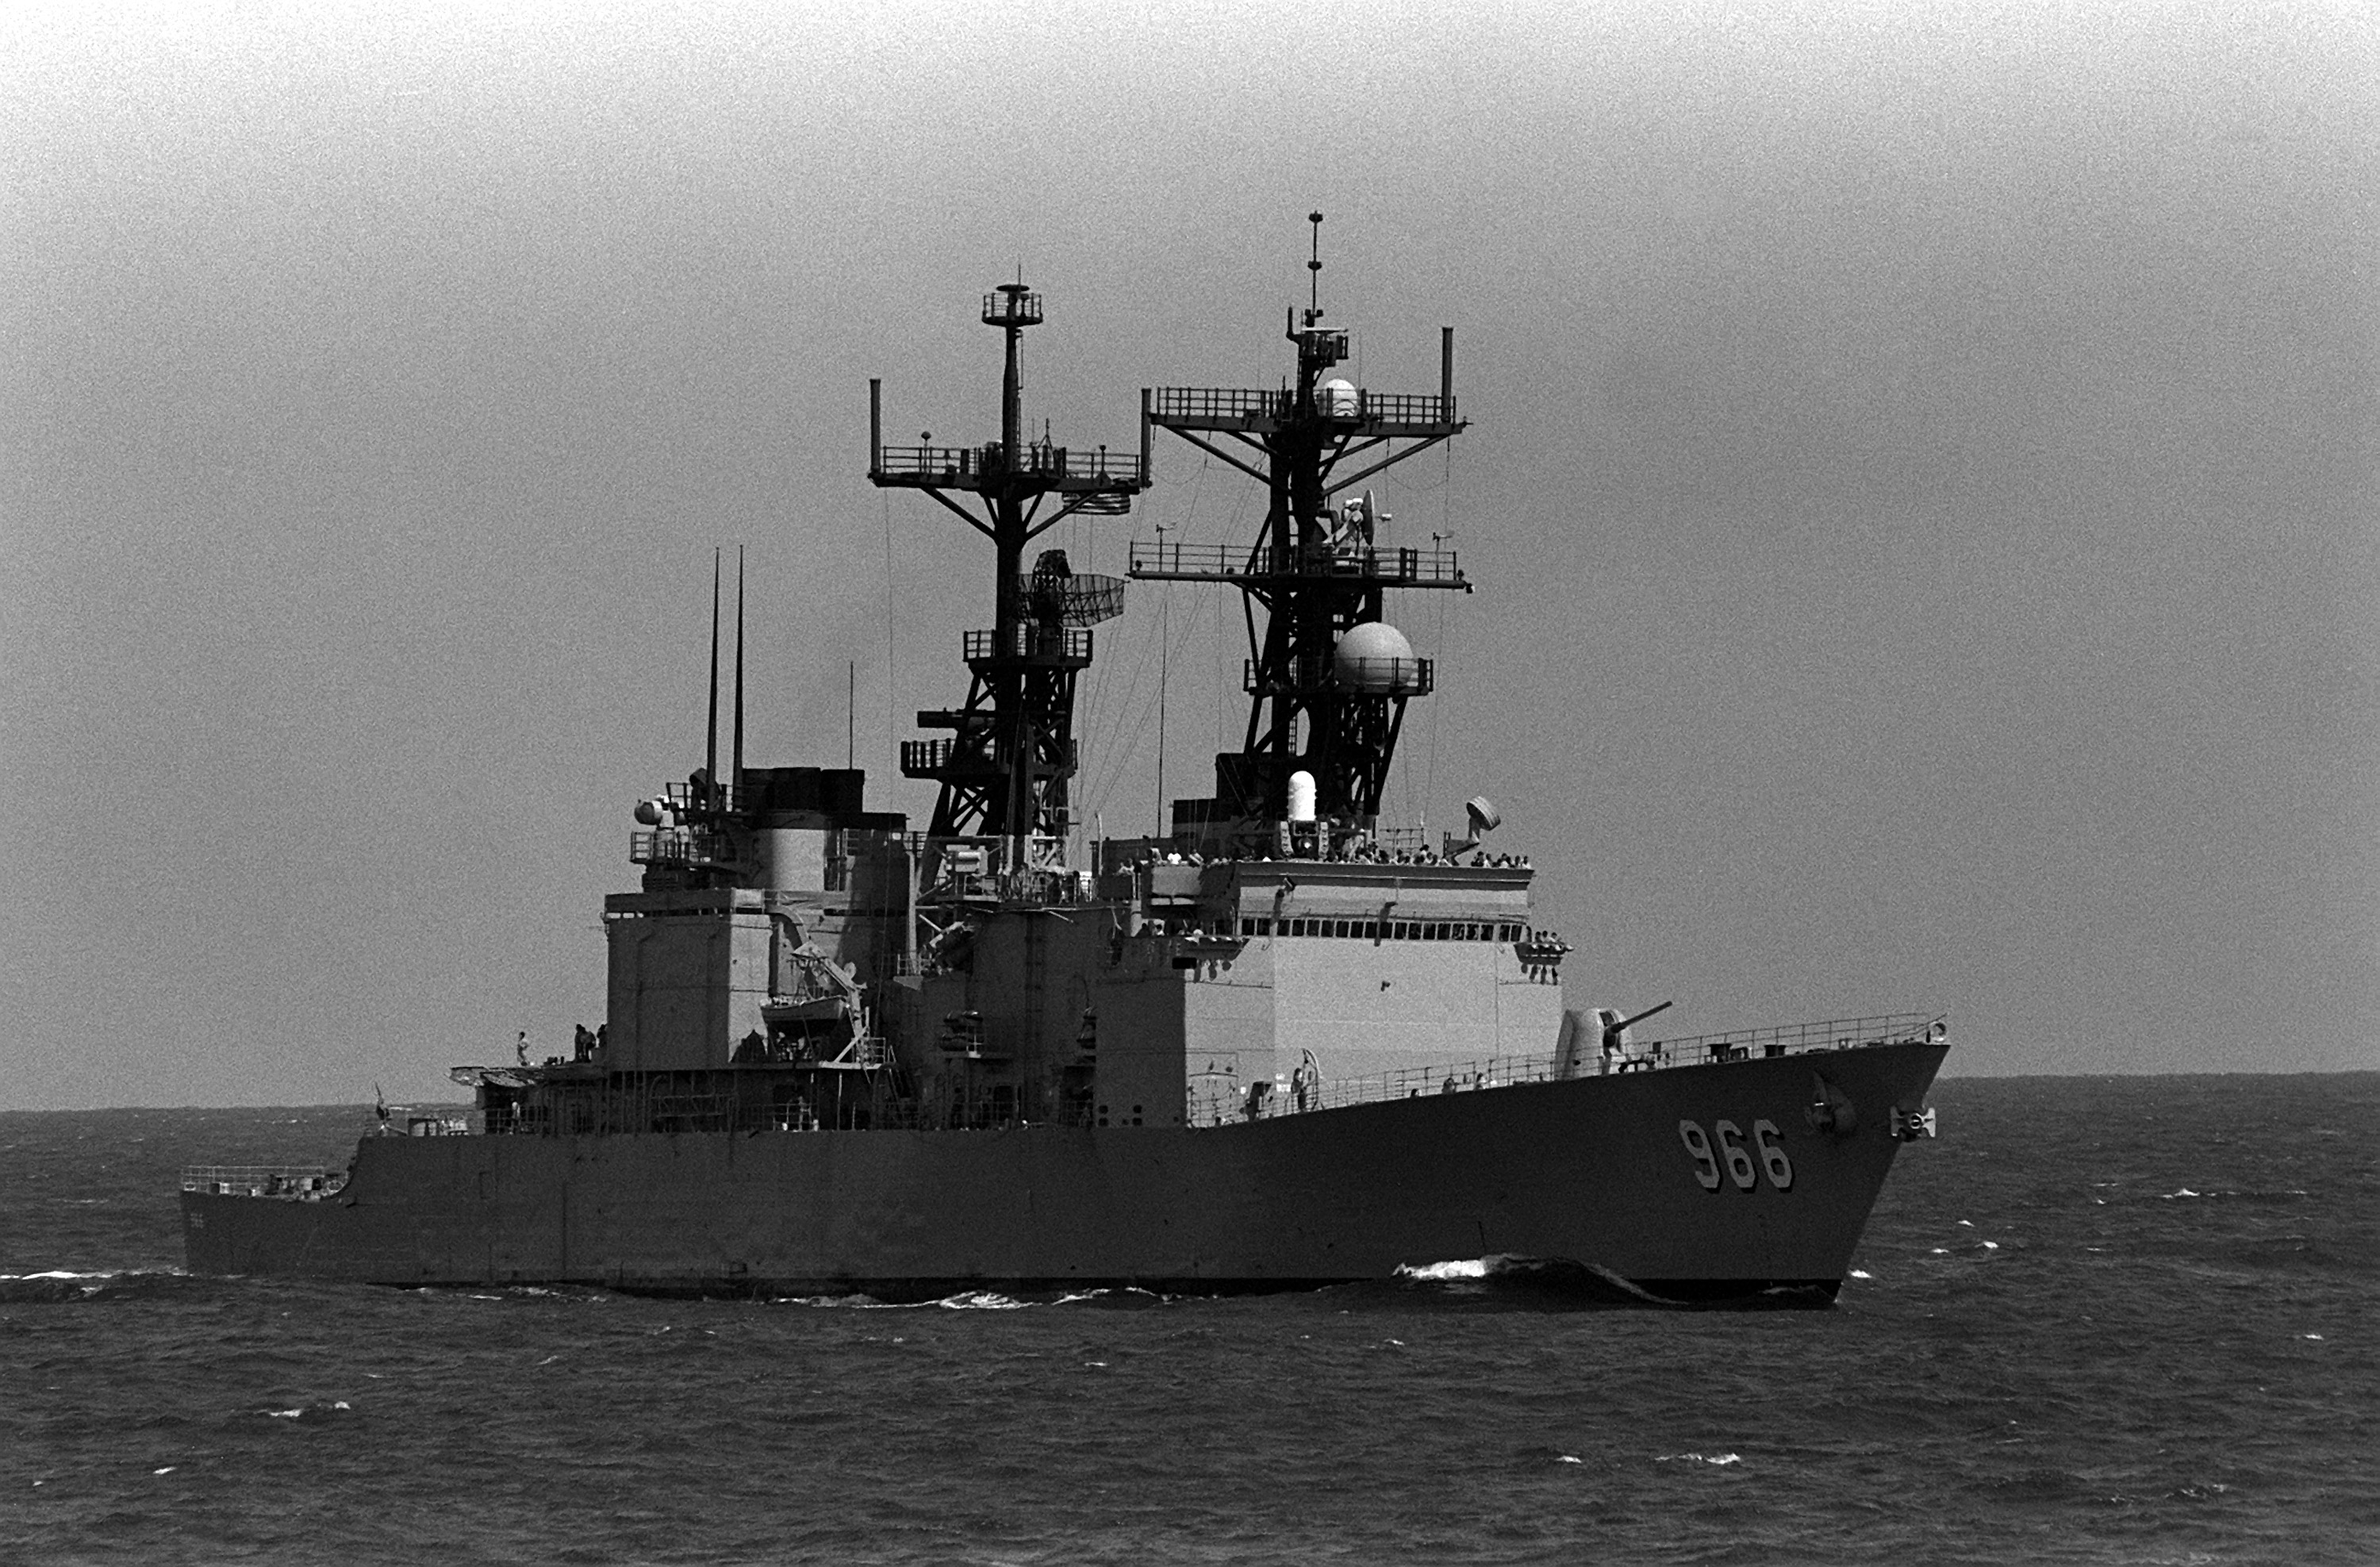 La Bombe ! On commence fort !! - Page 2 USS_Hewitt_(DD-966)_stbd_bow_view_FLEETEX_89